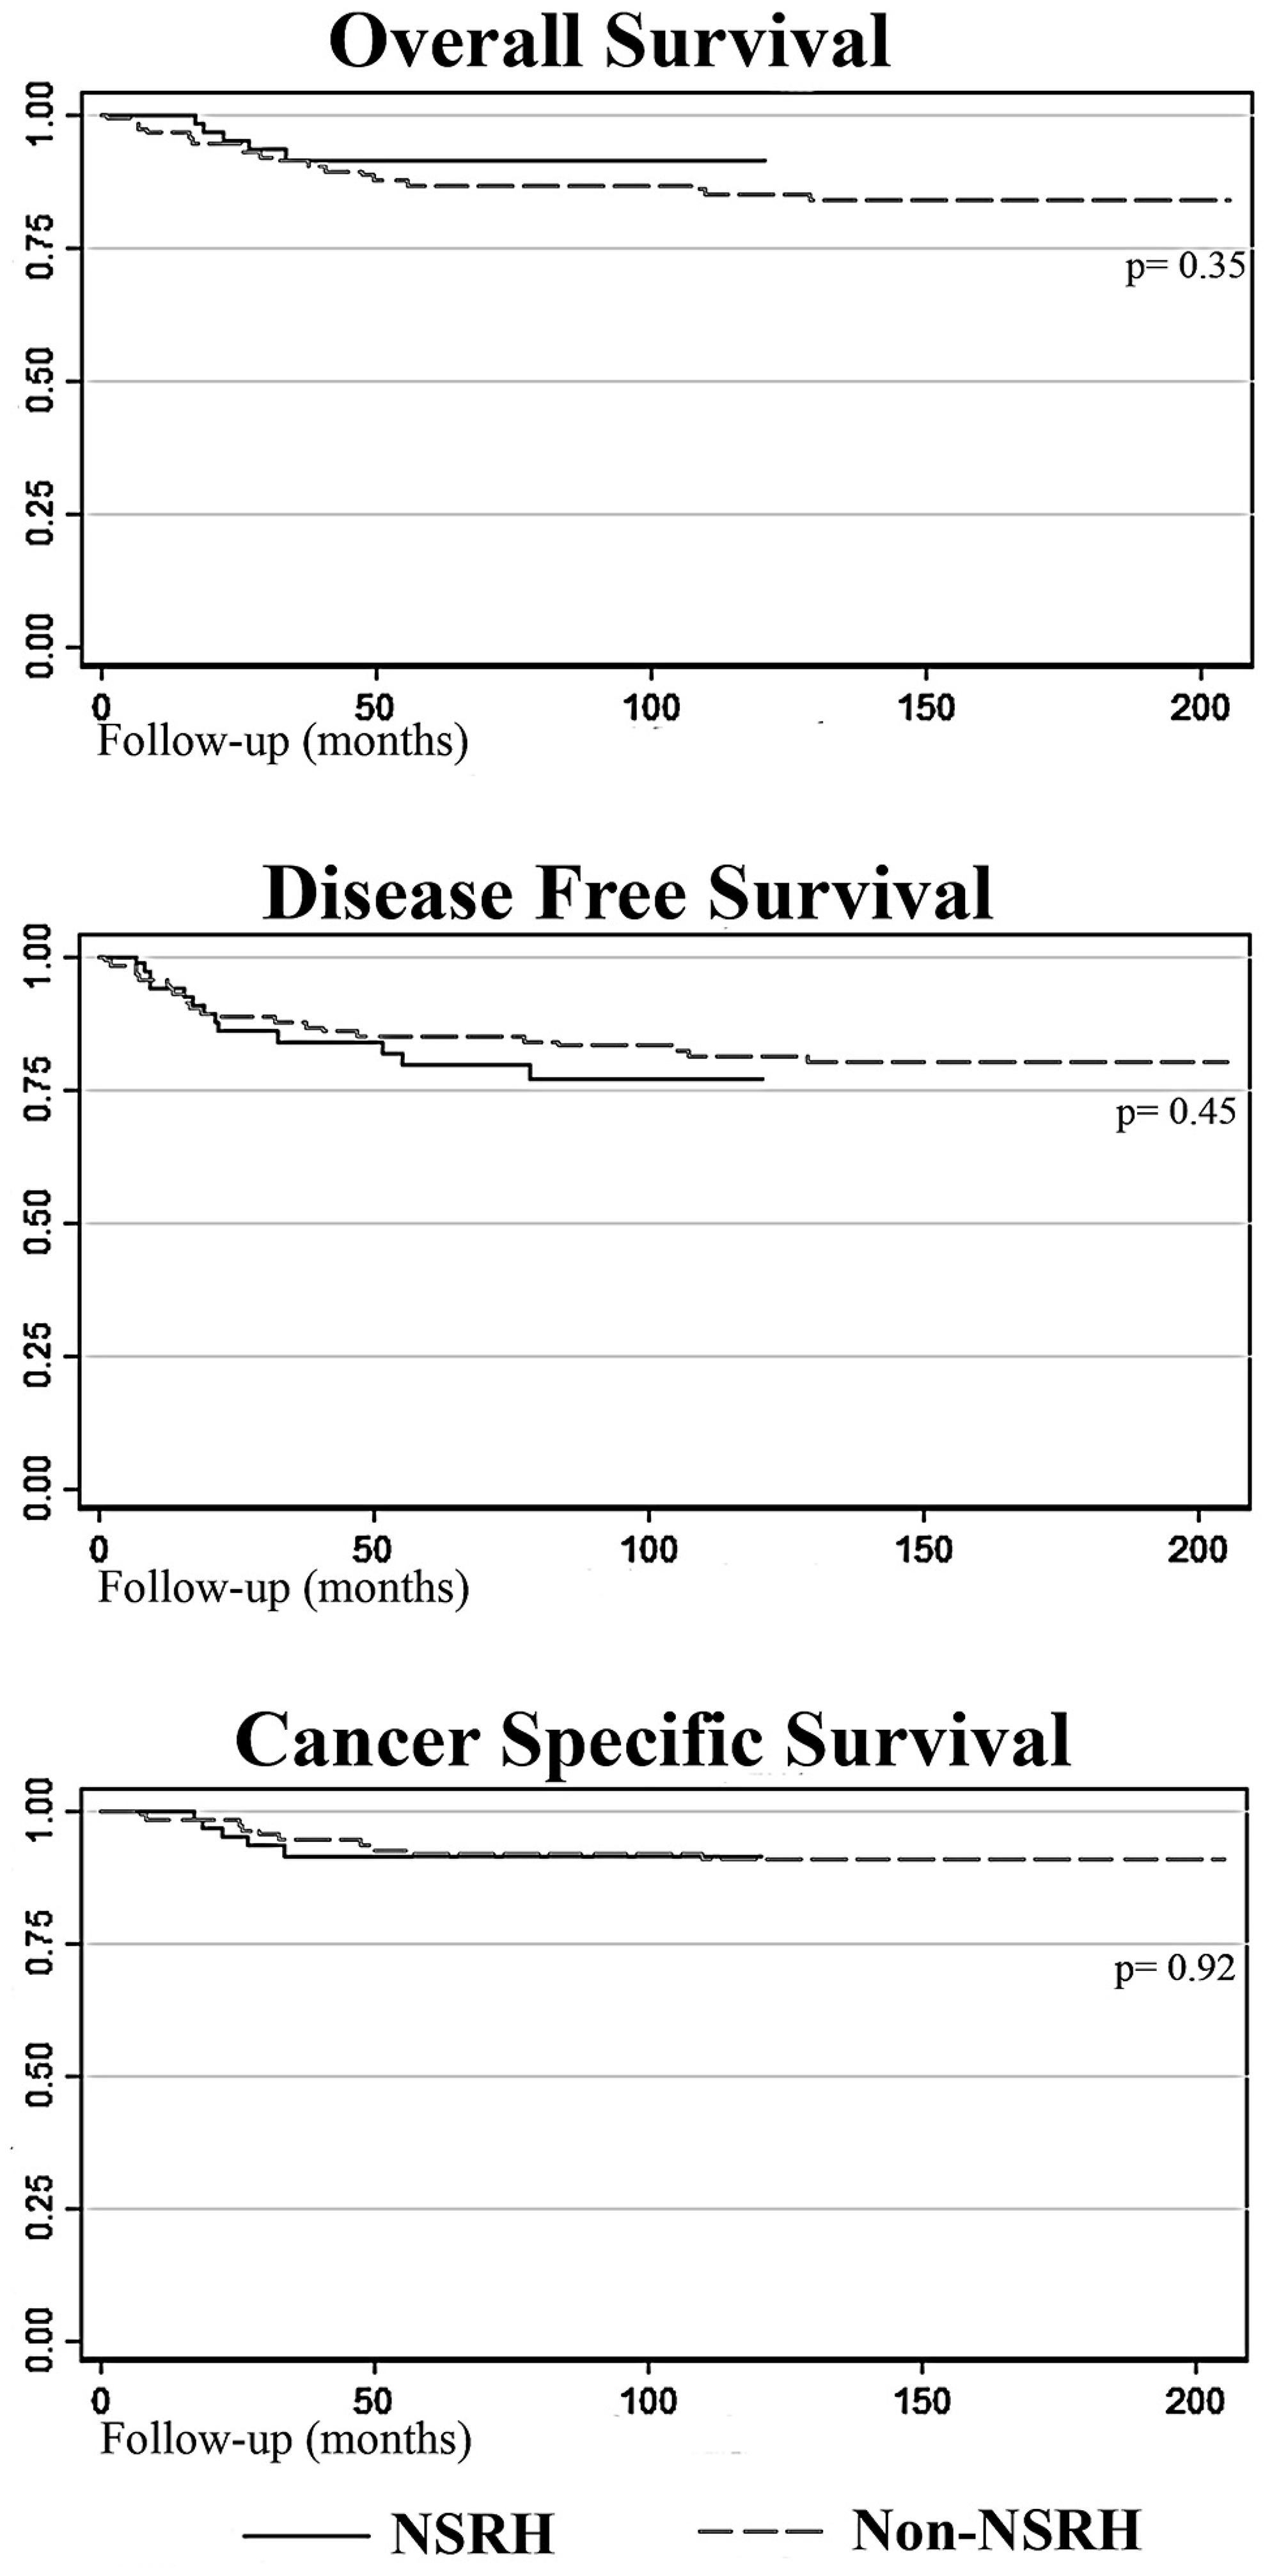 Survival curves comparing NSRH with non-NSRH.